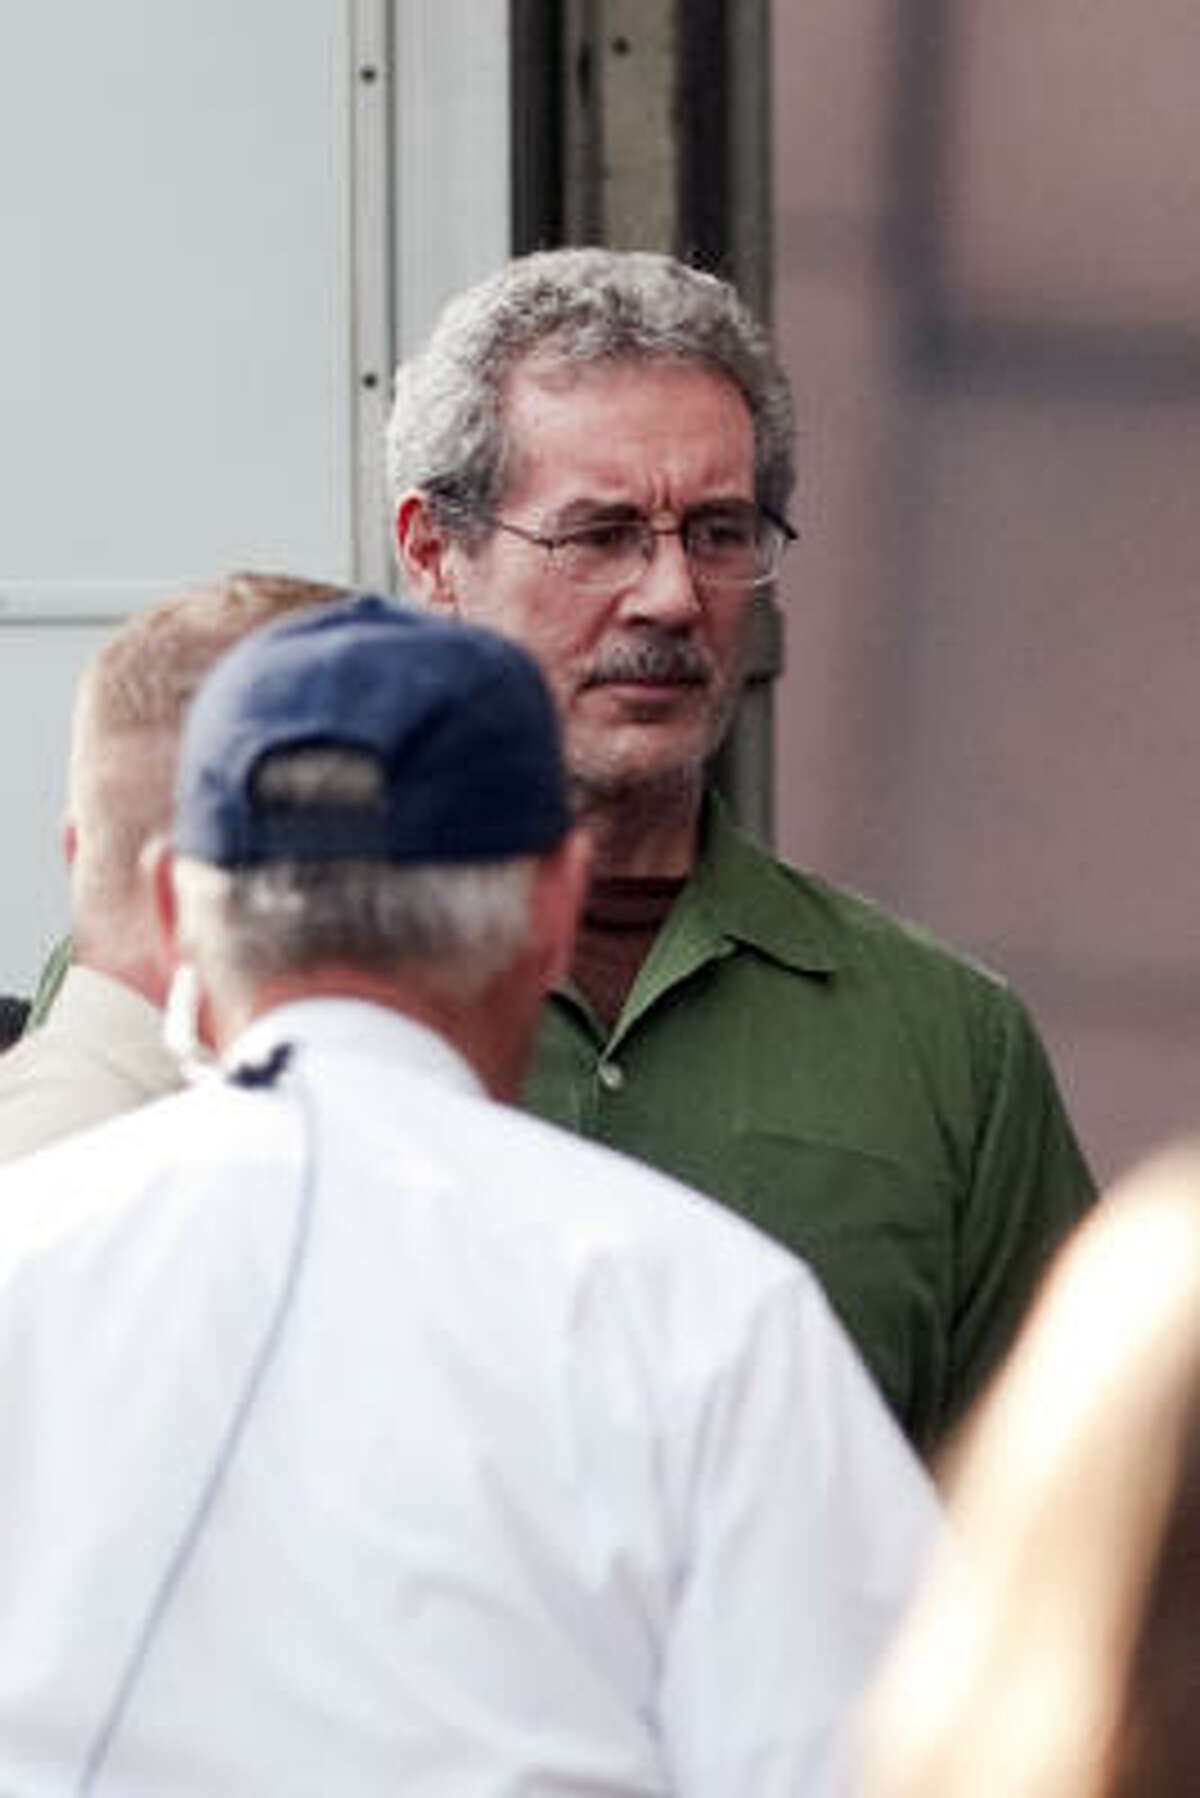 R. Allen Stanford (shown Tuesday) said his current lawyer, Robert S. Bennett, is the first to give him hope in some time.